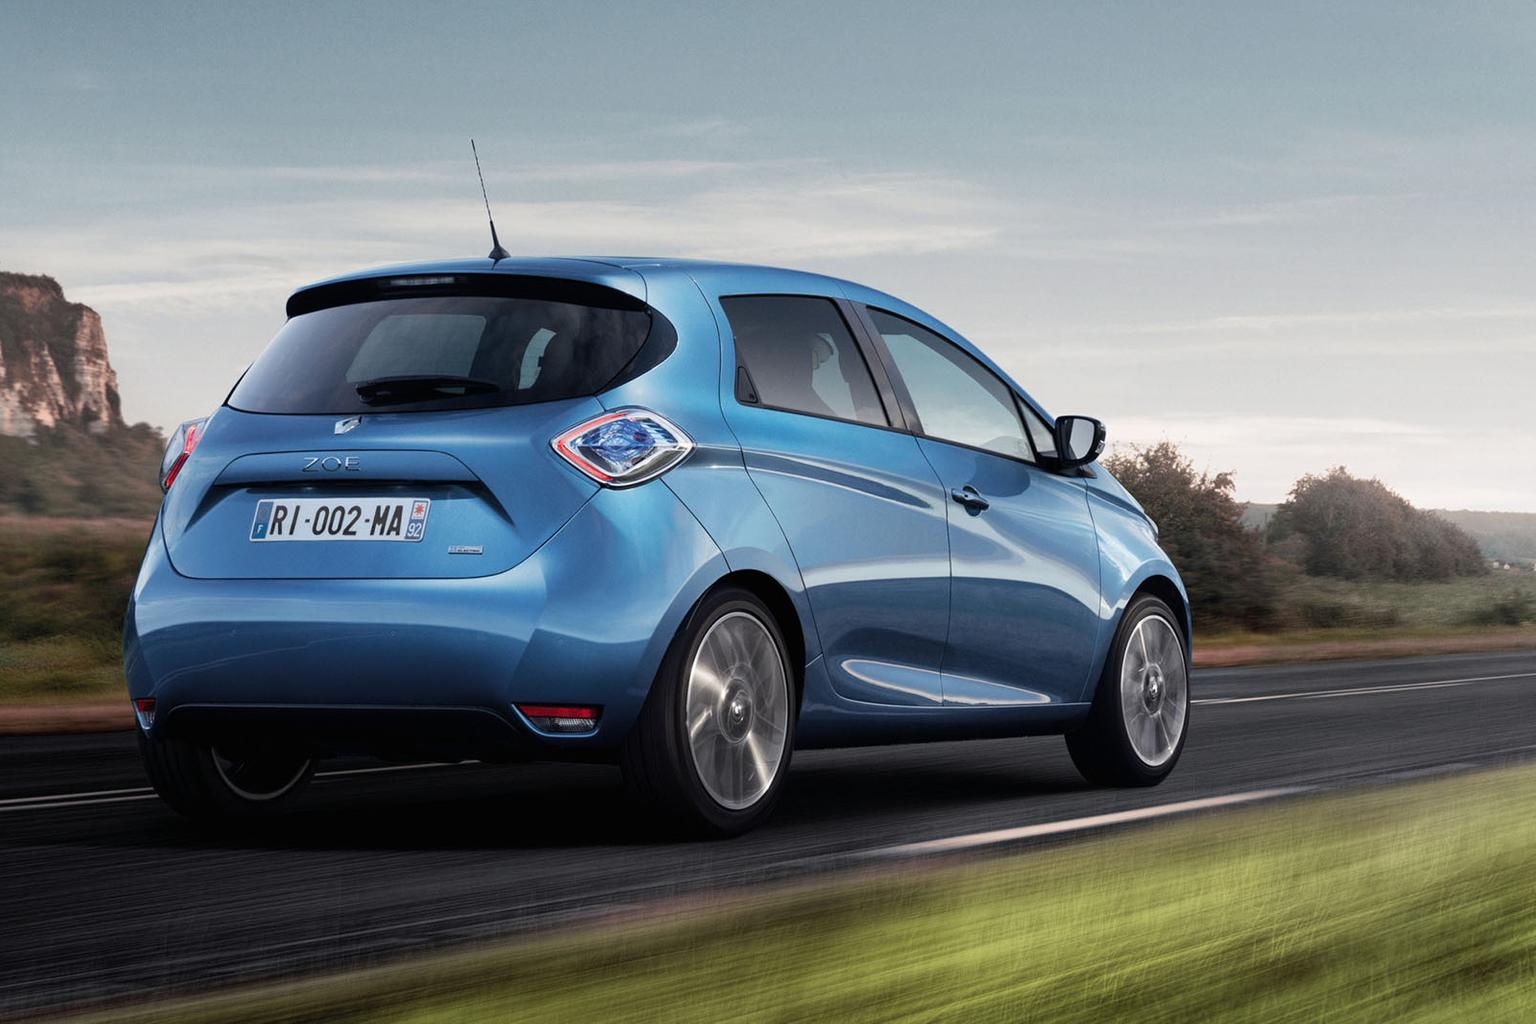 Upgraded Renault Zoe gets more range